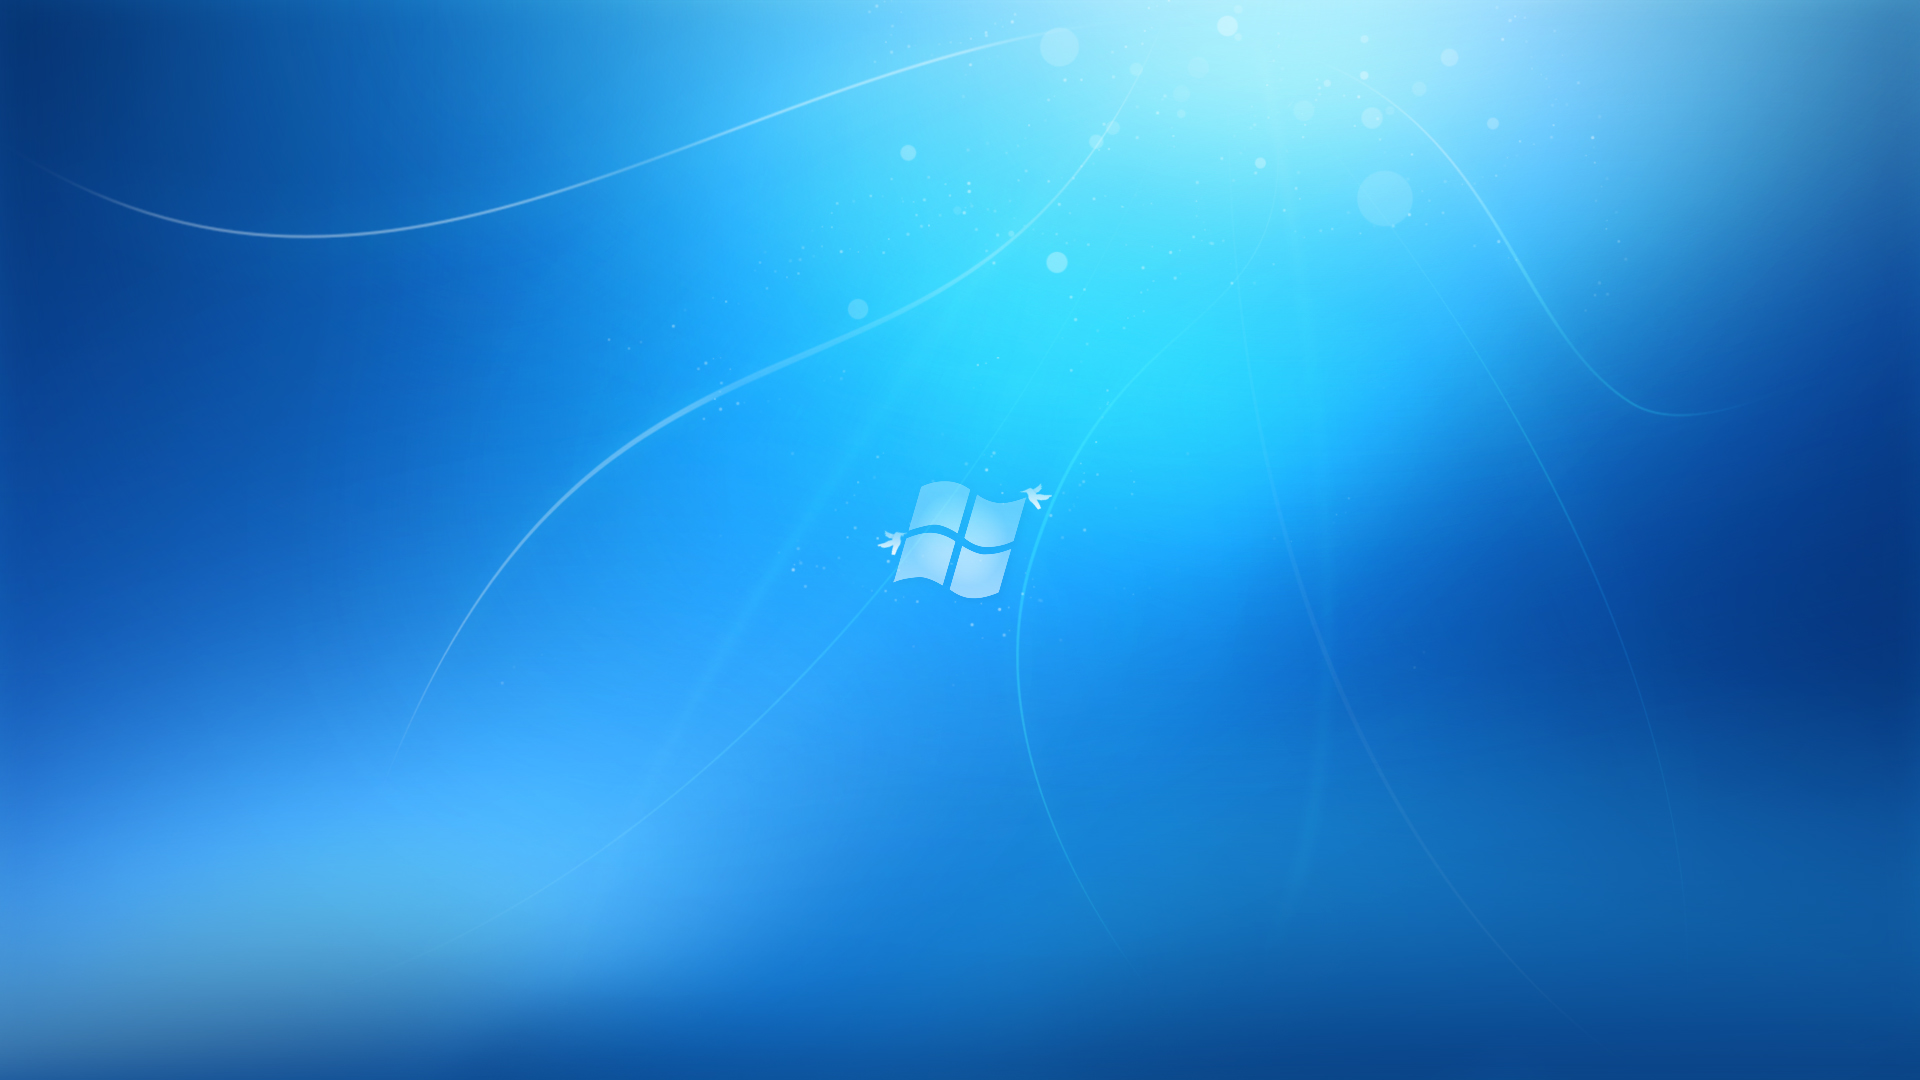 Windows Blue Wallpaper 1080p